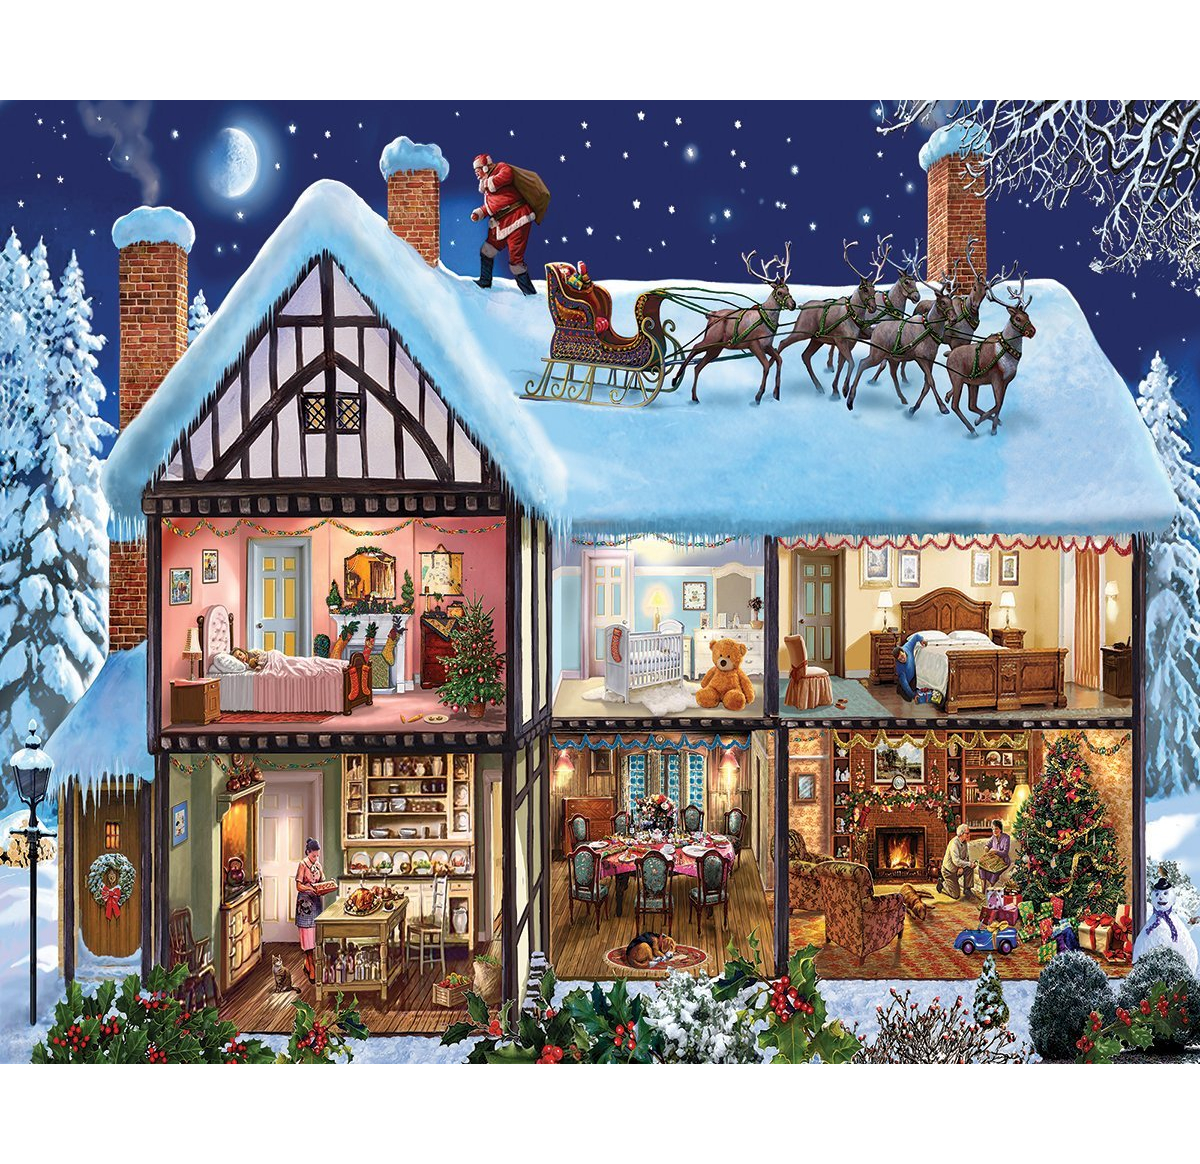 Christmas House 1000 Piece Jigsaw Puzzle